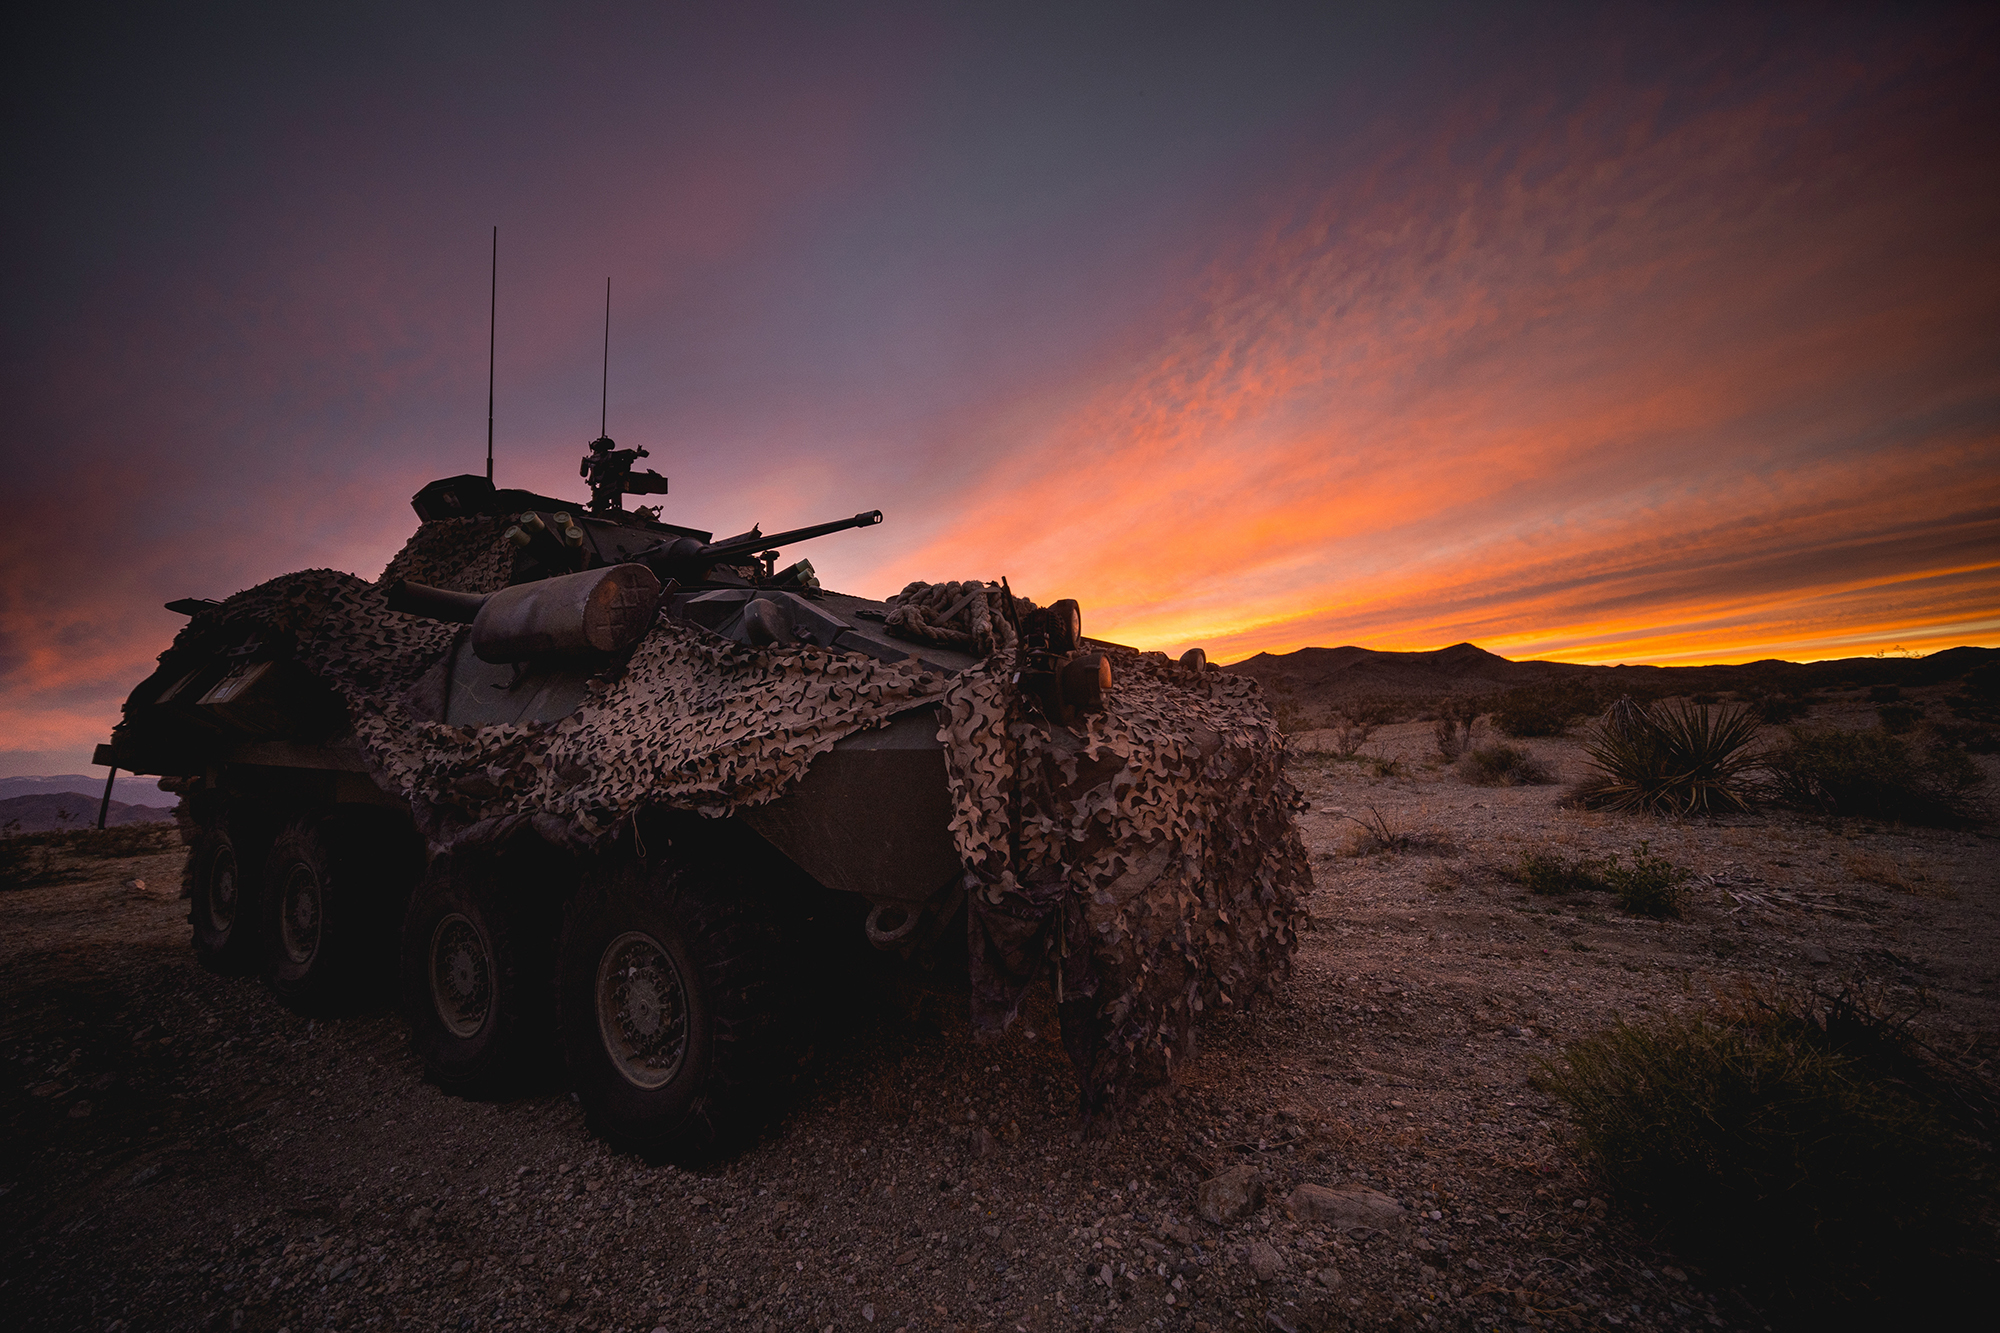 A Light Armored Vehicle-25 is used to secure a position during a Marine Corps combat readiness evaluation at Marine Corps Air Ground Combat Center Twentynine Palms, Calif., March 31, 2020. (Cpl. Corey A. Mathews/Marine Corps)